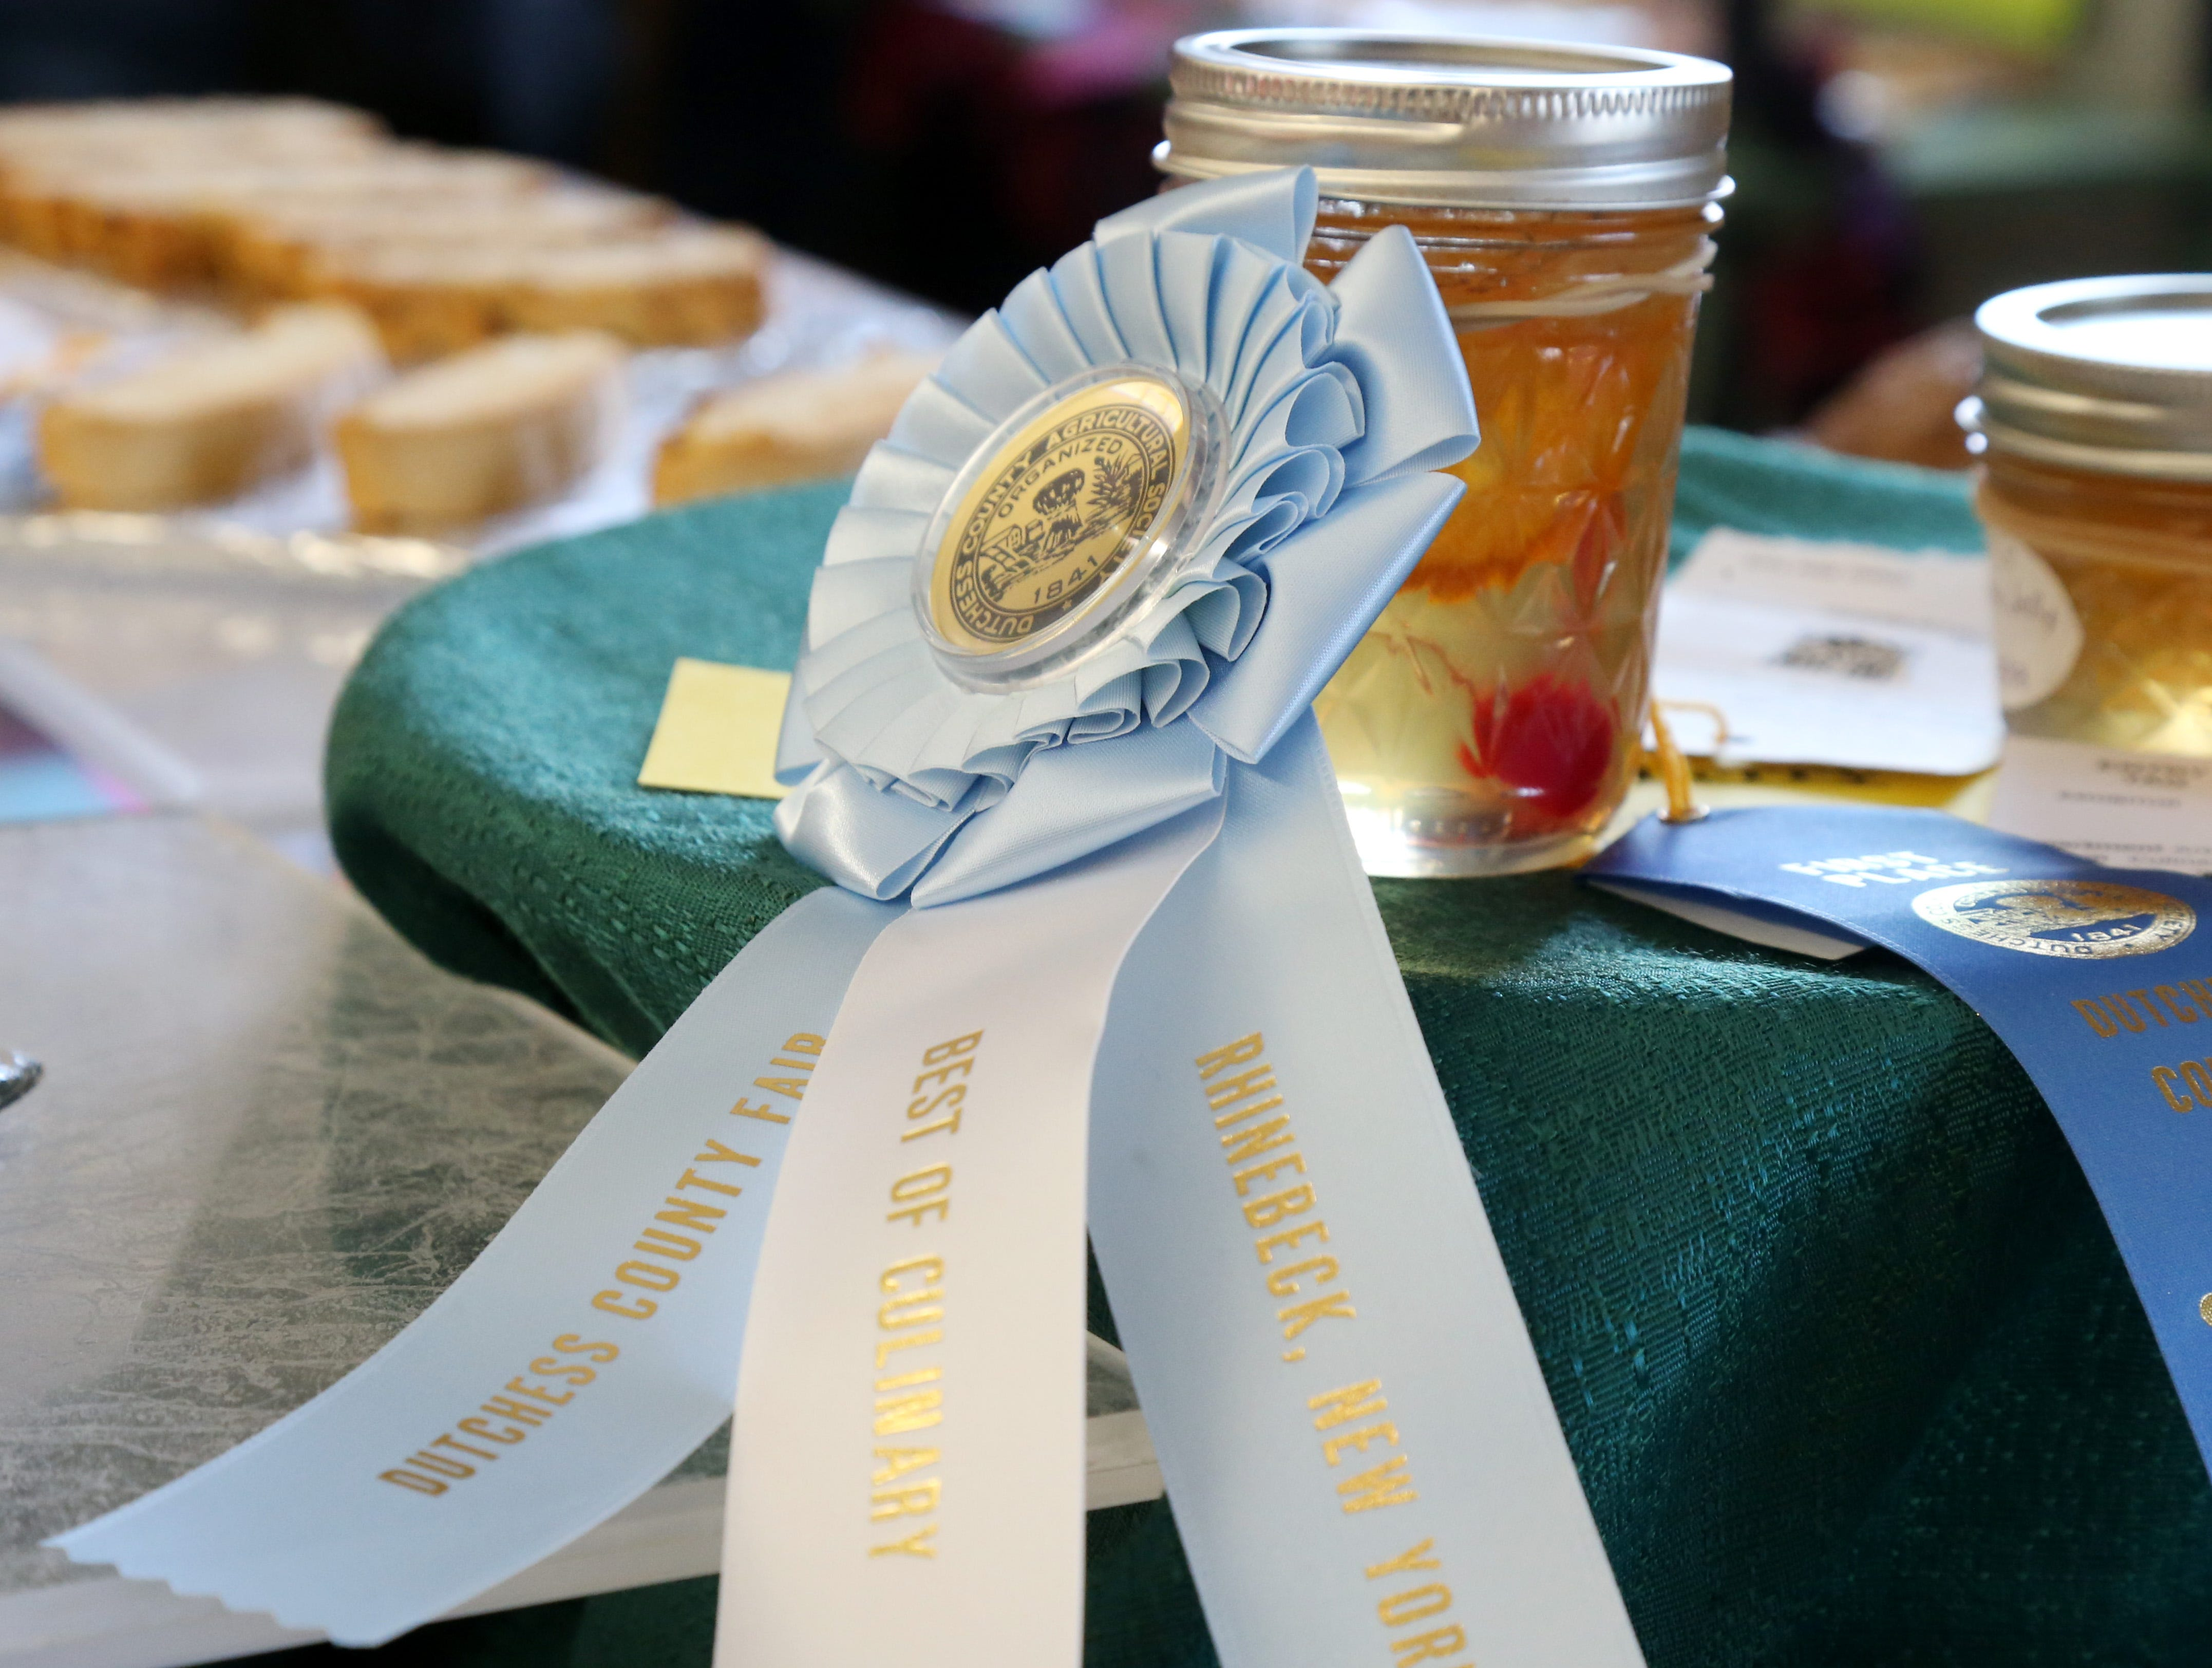 A whiskey sour jelly made by Terry Sennett won the best of culinary at the Dutchess County Fair in Rhinebeck on August 21 2018.